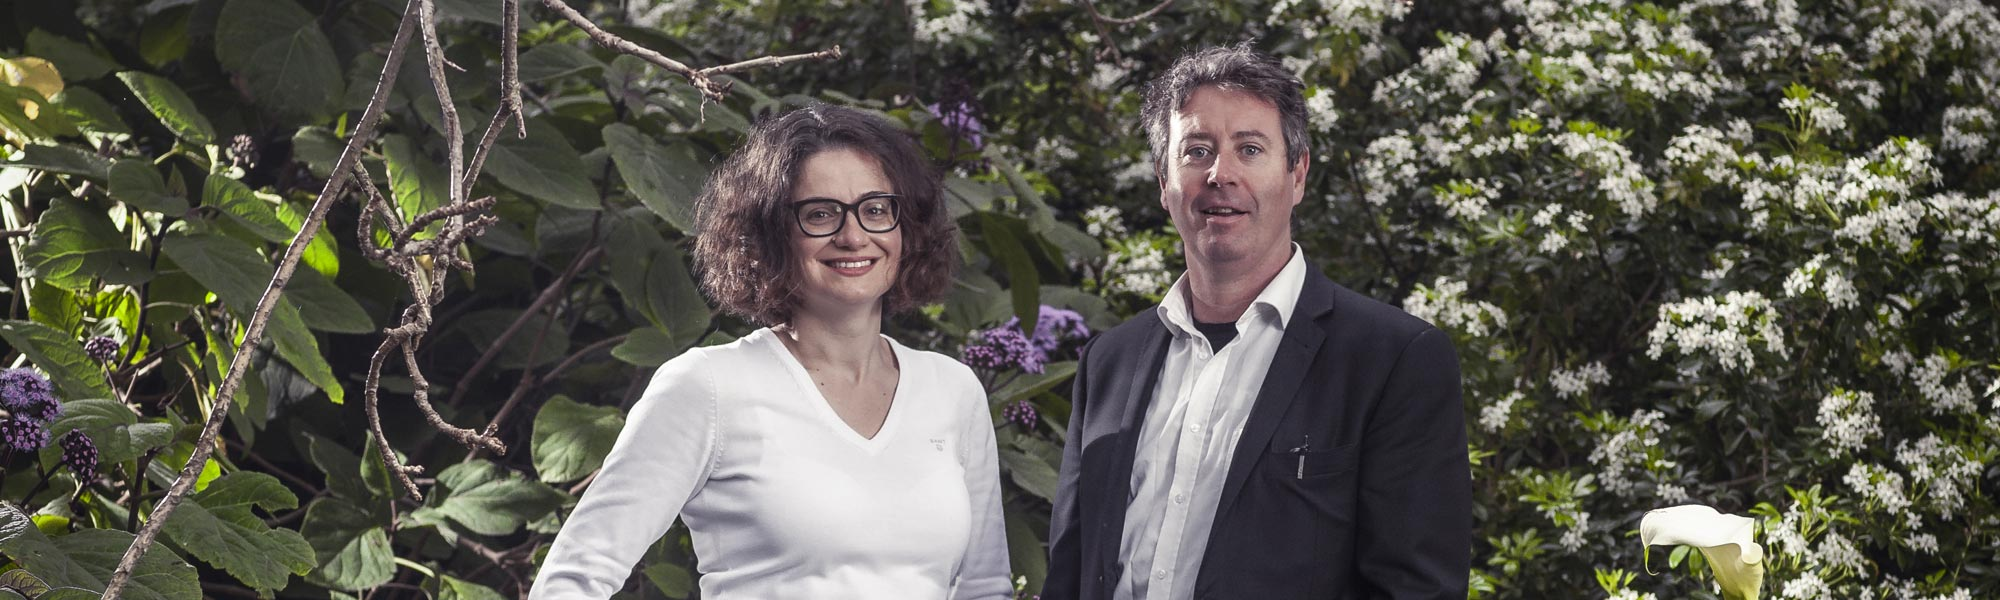 Professor Niki Frantzeskaki, Director of Swinburne's Centre for Urban Transitions, and Dr Stephen Glackin, a Senior Research Fellow at the centre, stand infront of a garden.